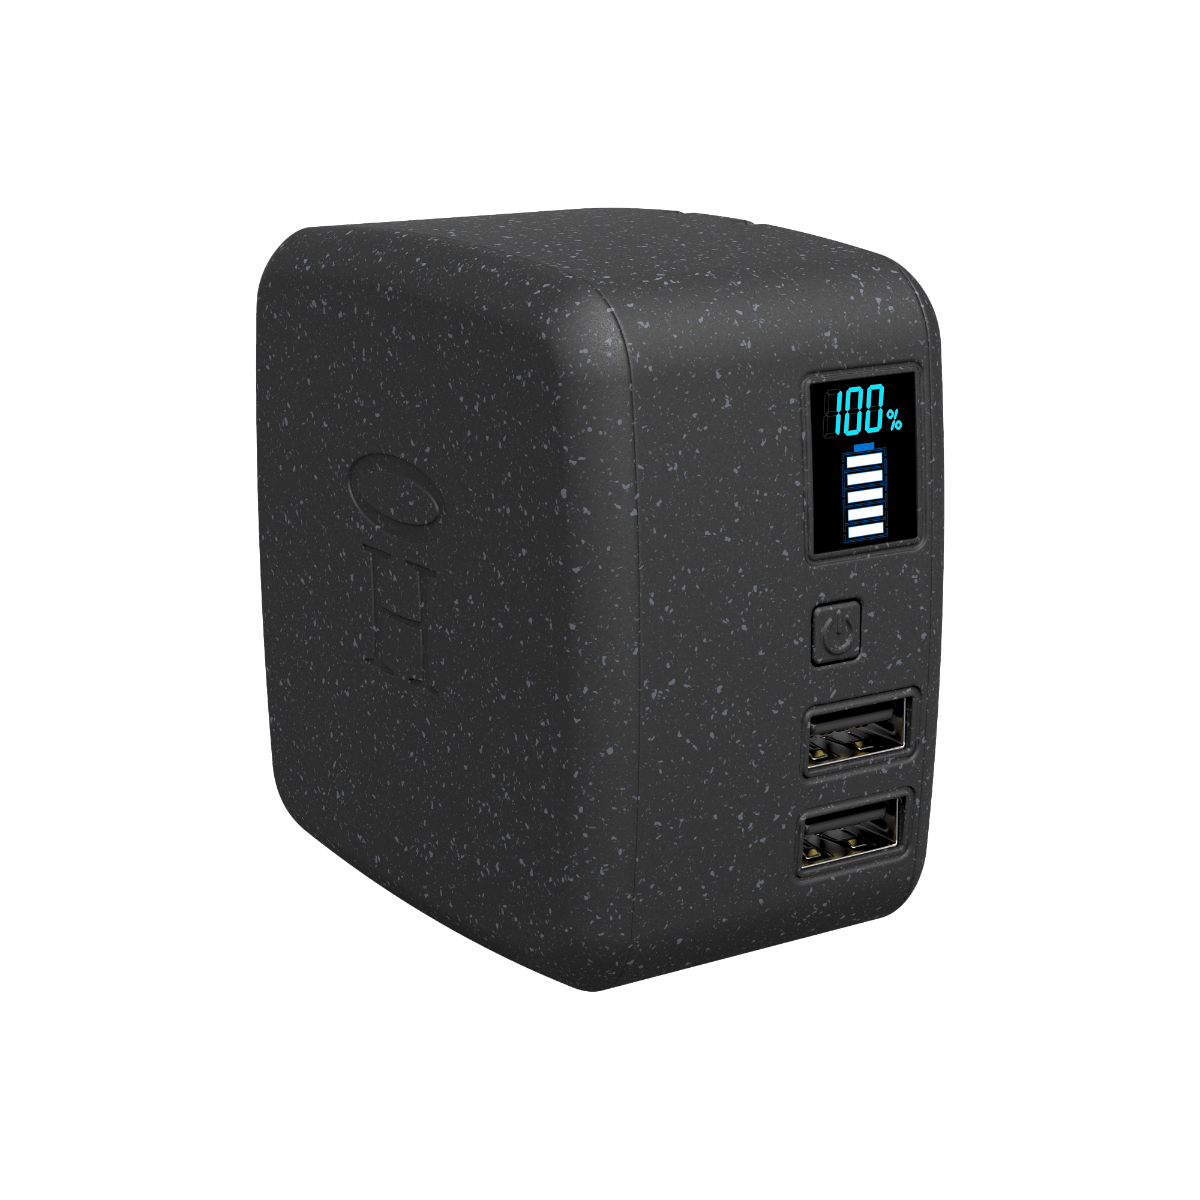 HALO Power Cube 10,000 (Black Speckle)